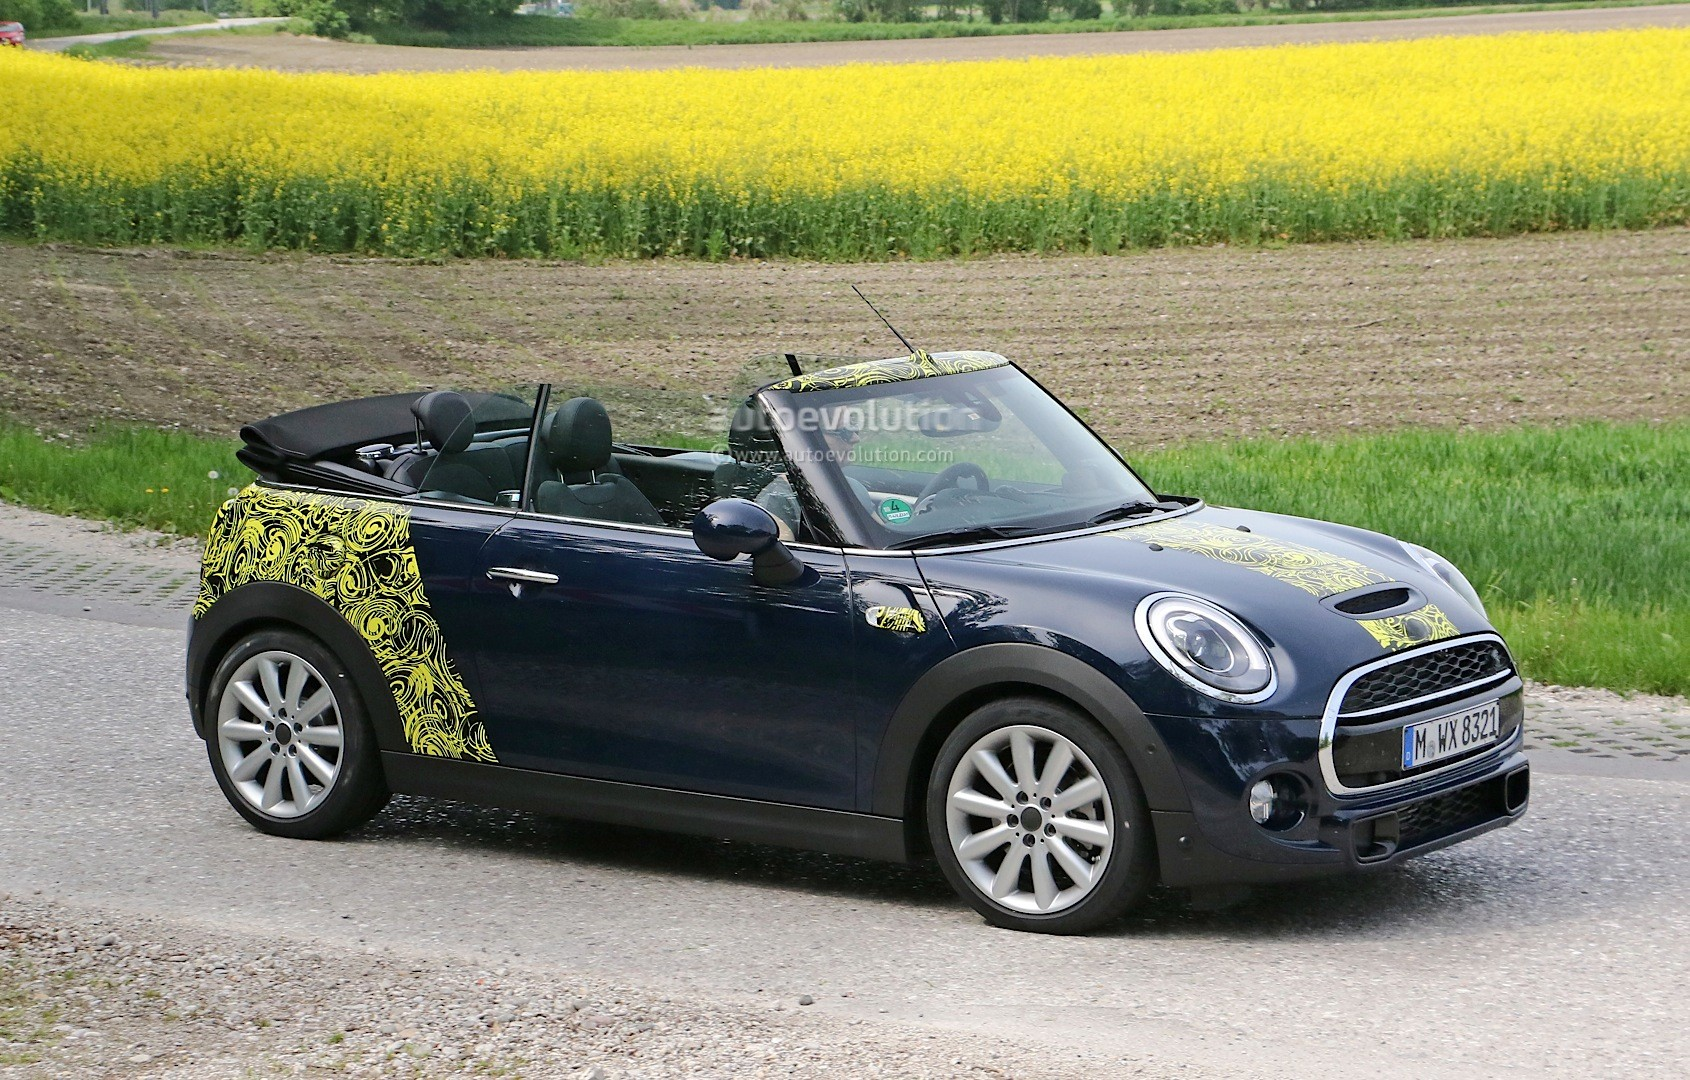 Spyshots 2016 MINI Cooper S Convertible Seen With Top